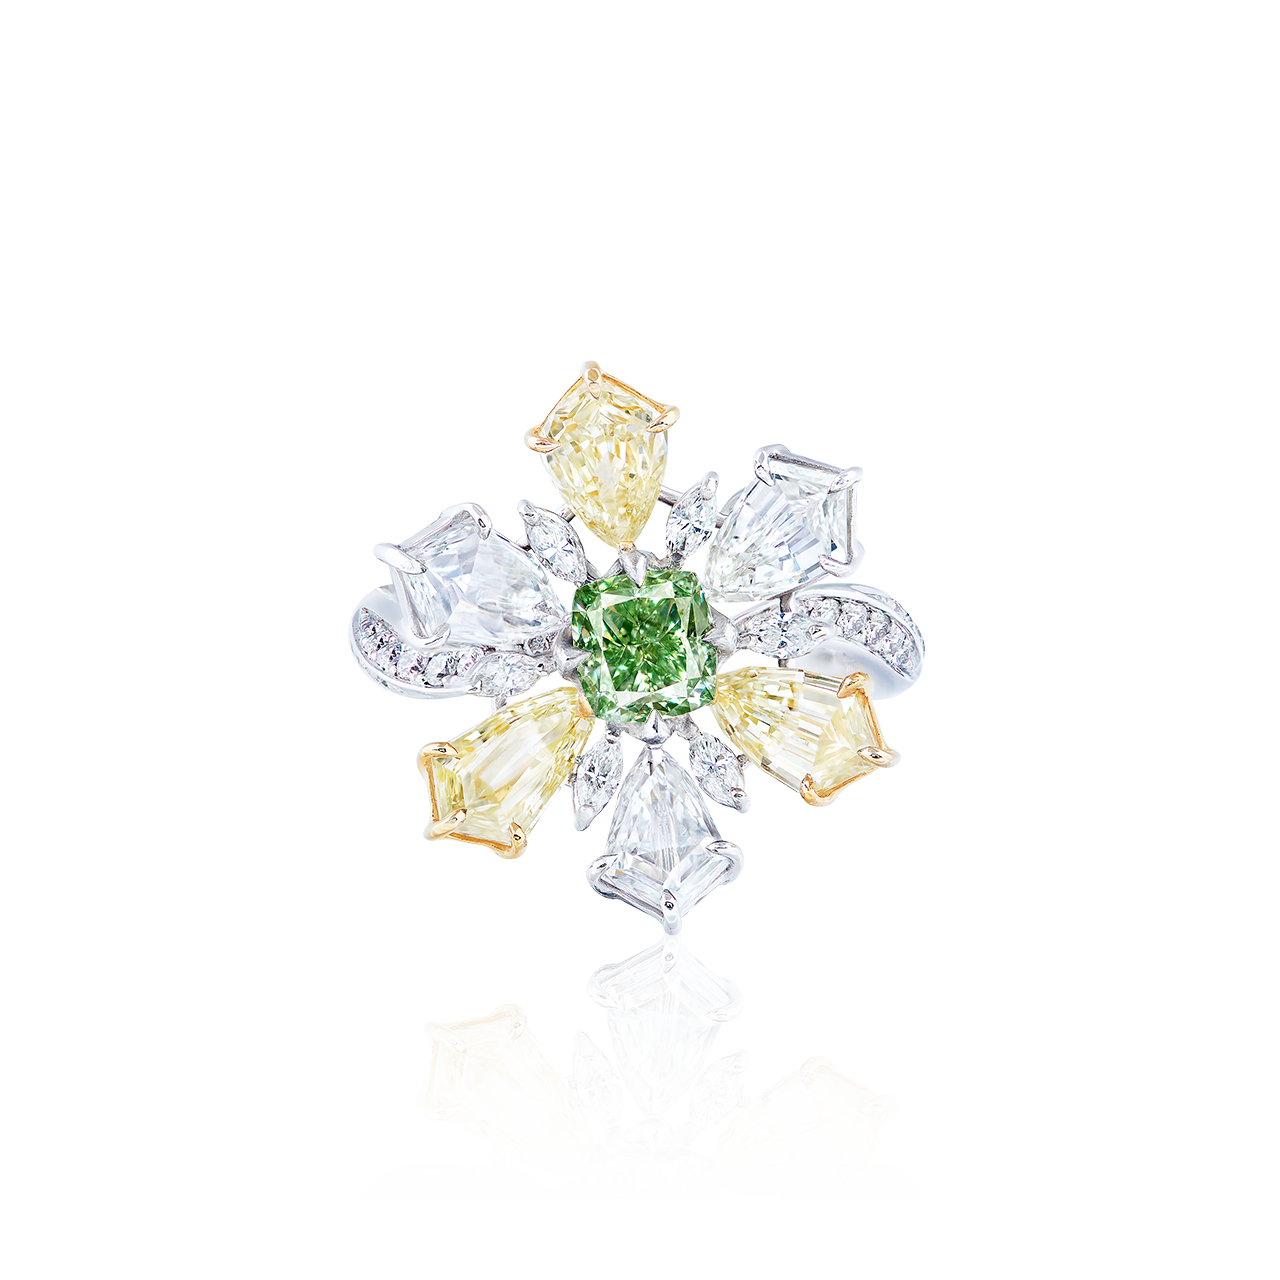 GIA 0.89 克拉 濃彩黃綠鑽鑽戒